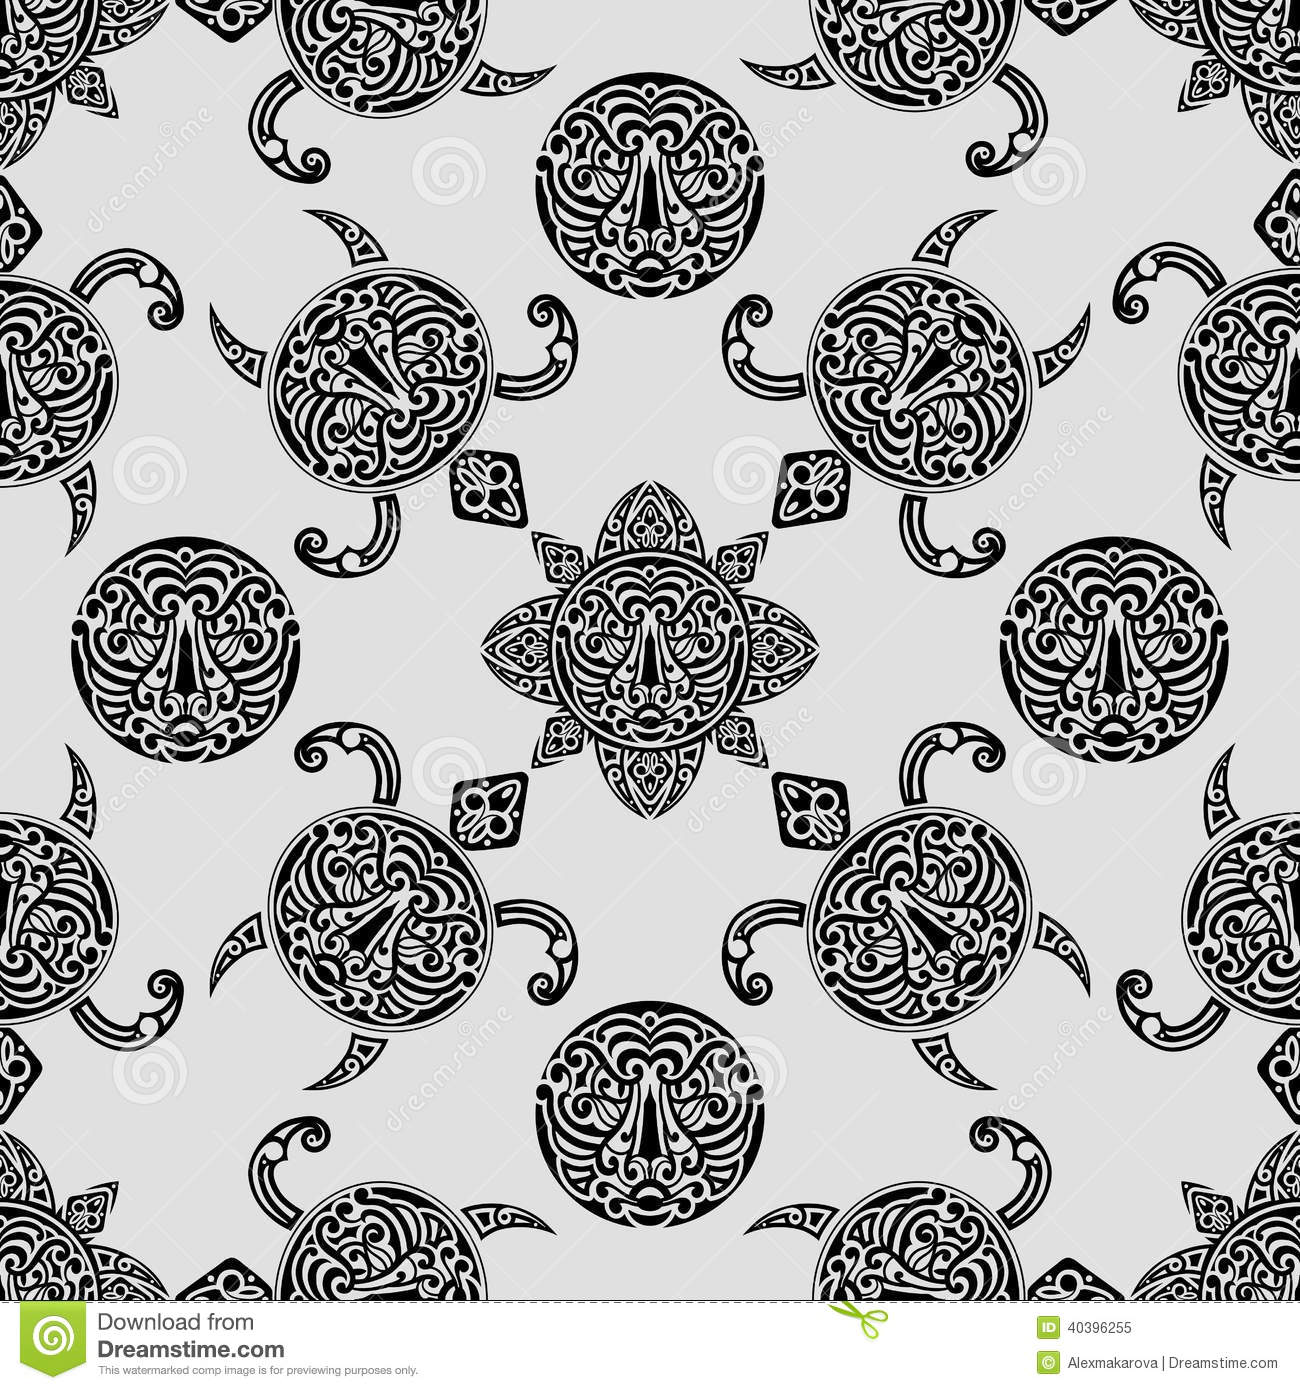 Vector Seamless Pattern With Polynesian Symbols Stock Vector